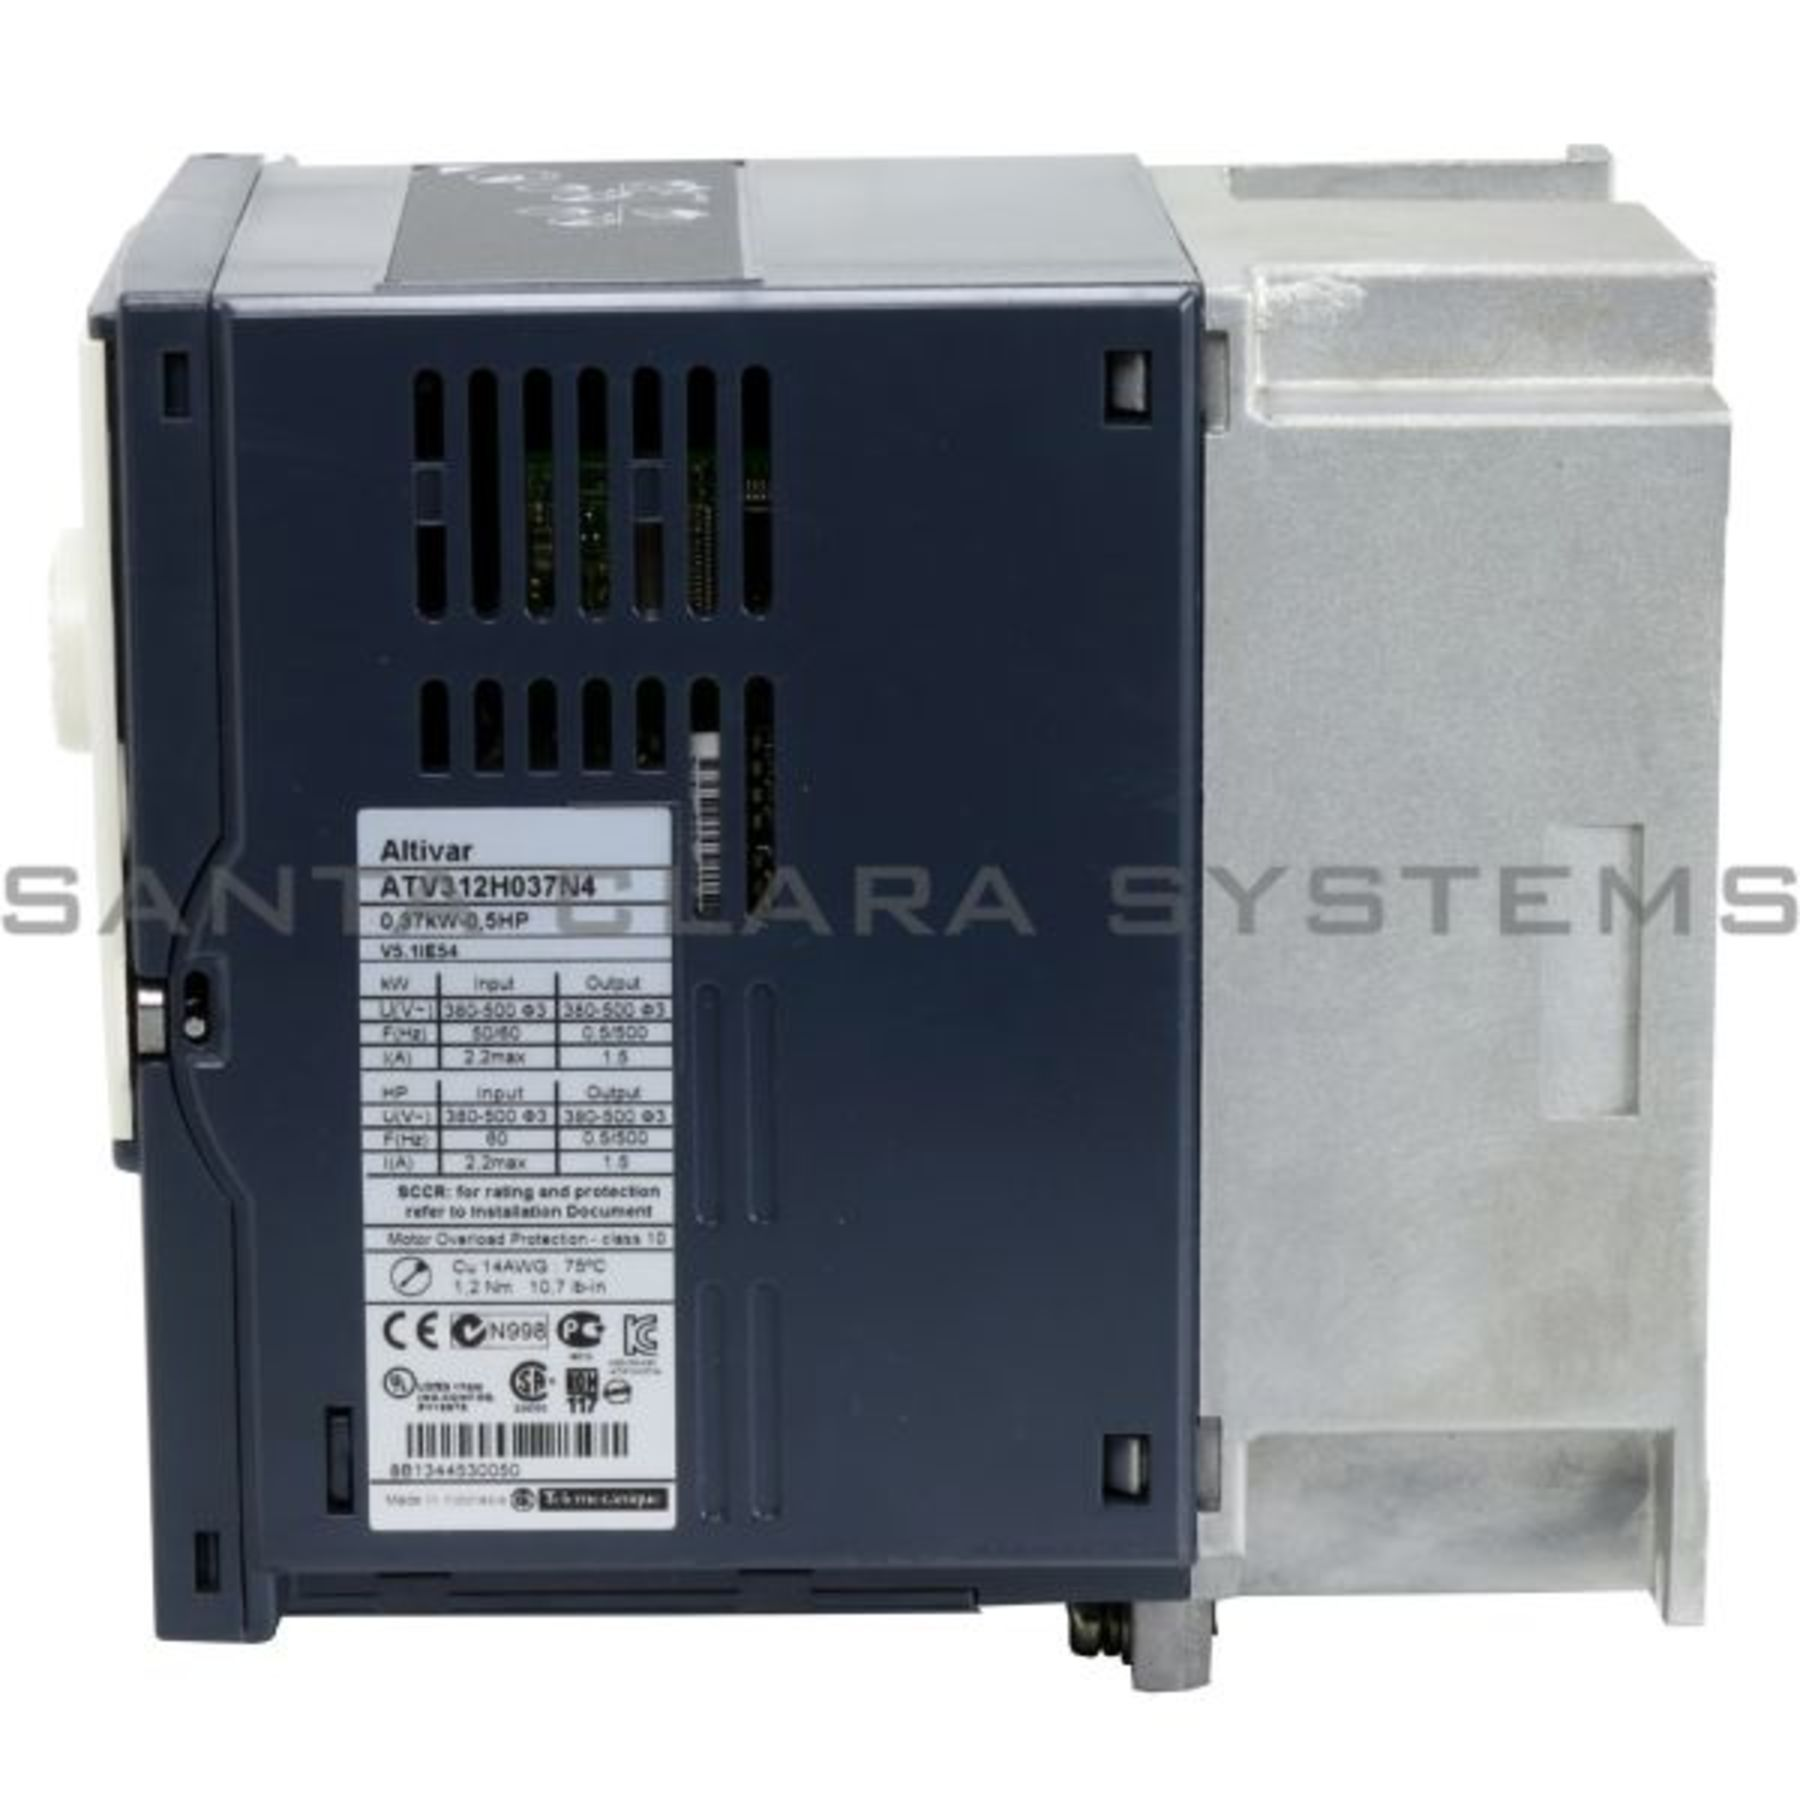 Telemecanique variable speed drive ATV312 - 0 37kW - 1 5kVA - 32W